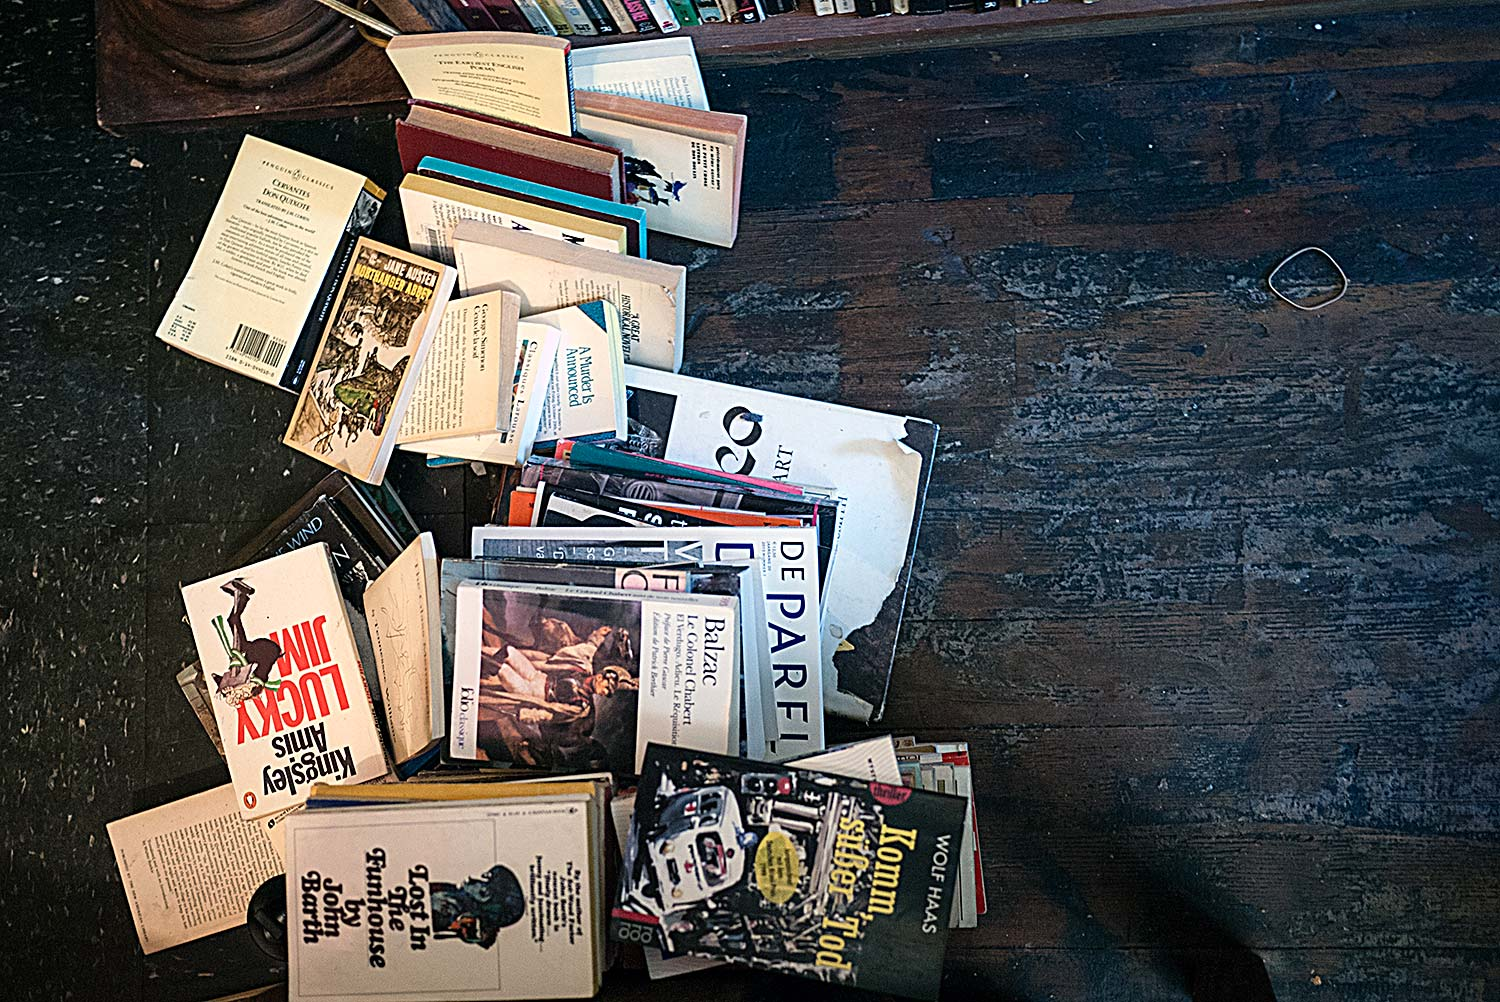 Books in a fallen stack upon the floor